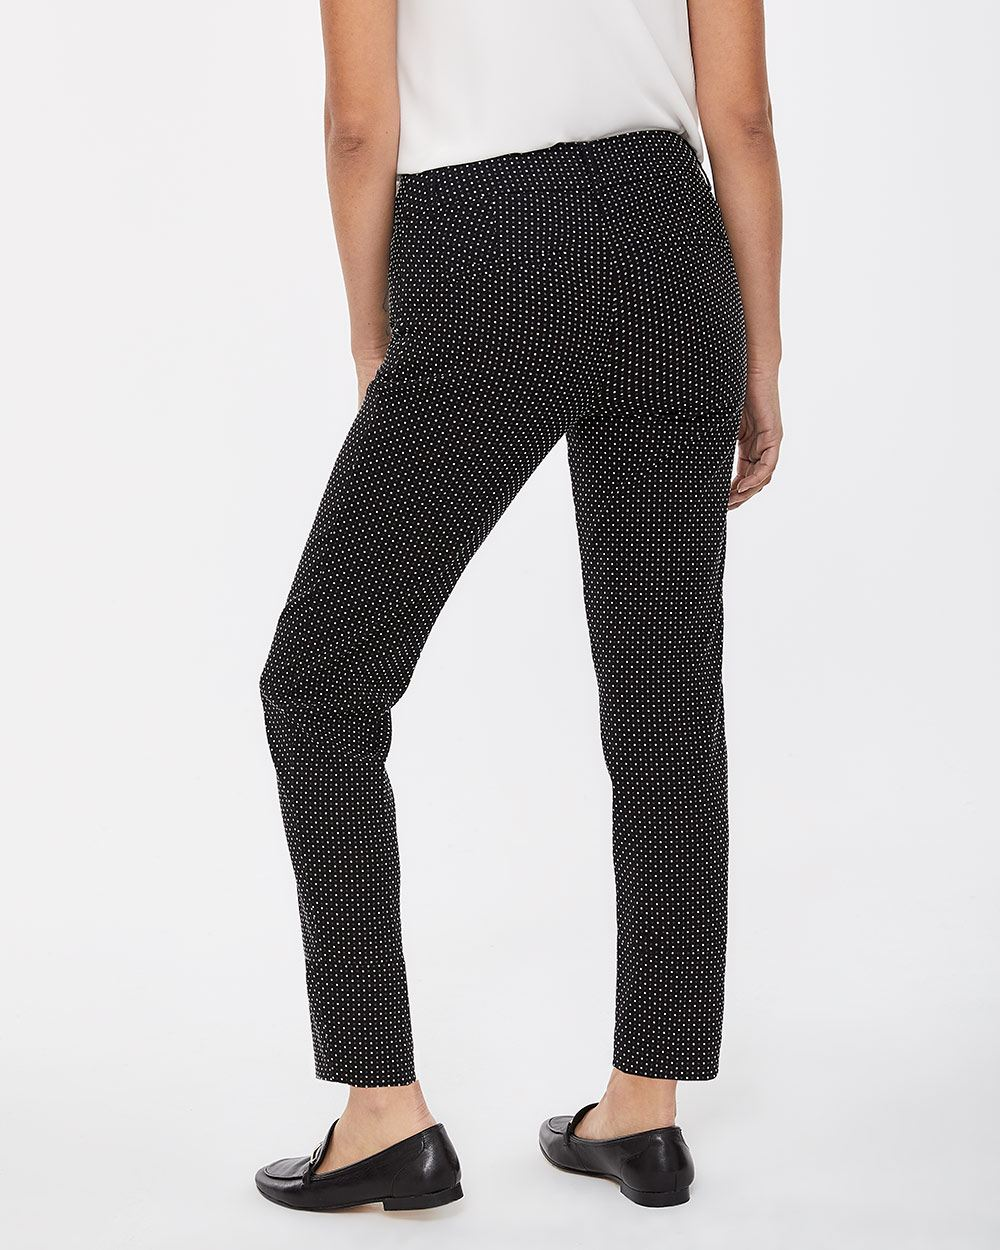 The Iconic Ankle Pants - Petite